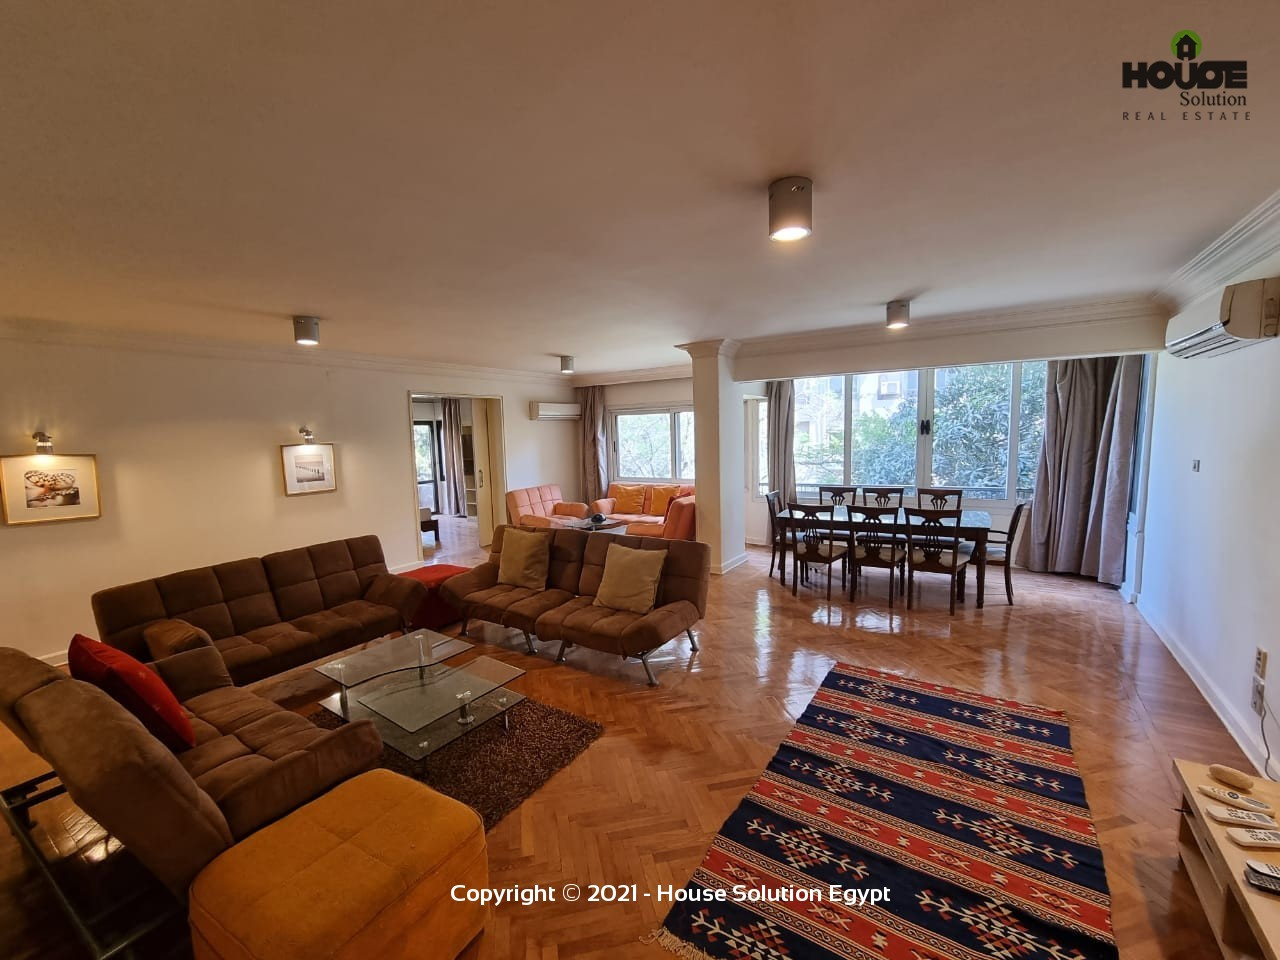 Stunning Furnished Apartment For Rent With Shared Pool Located In Sarayat El Maadi  - 4938 Featured Image